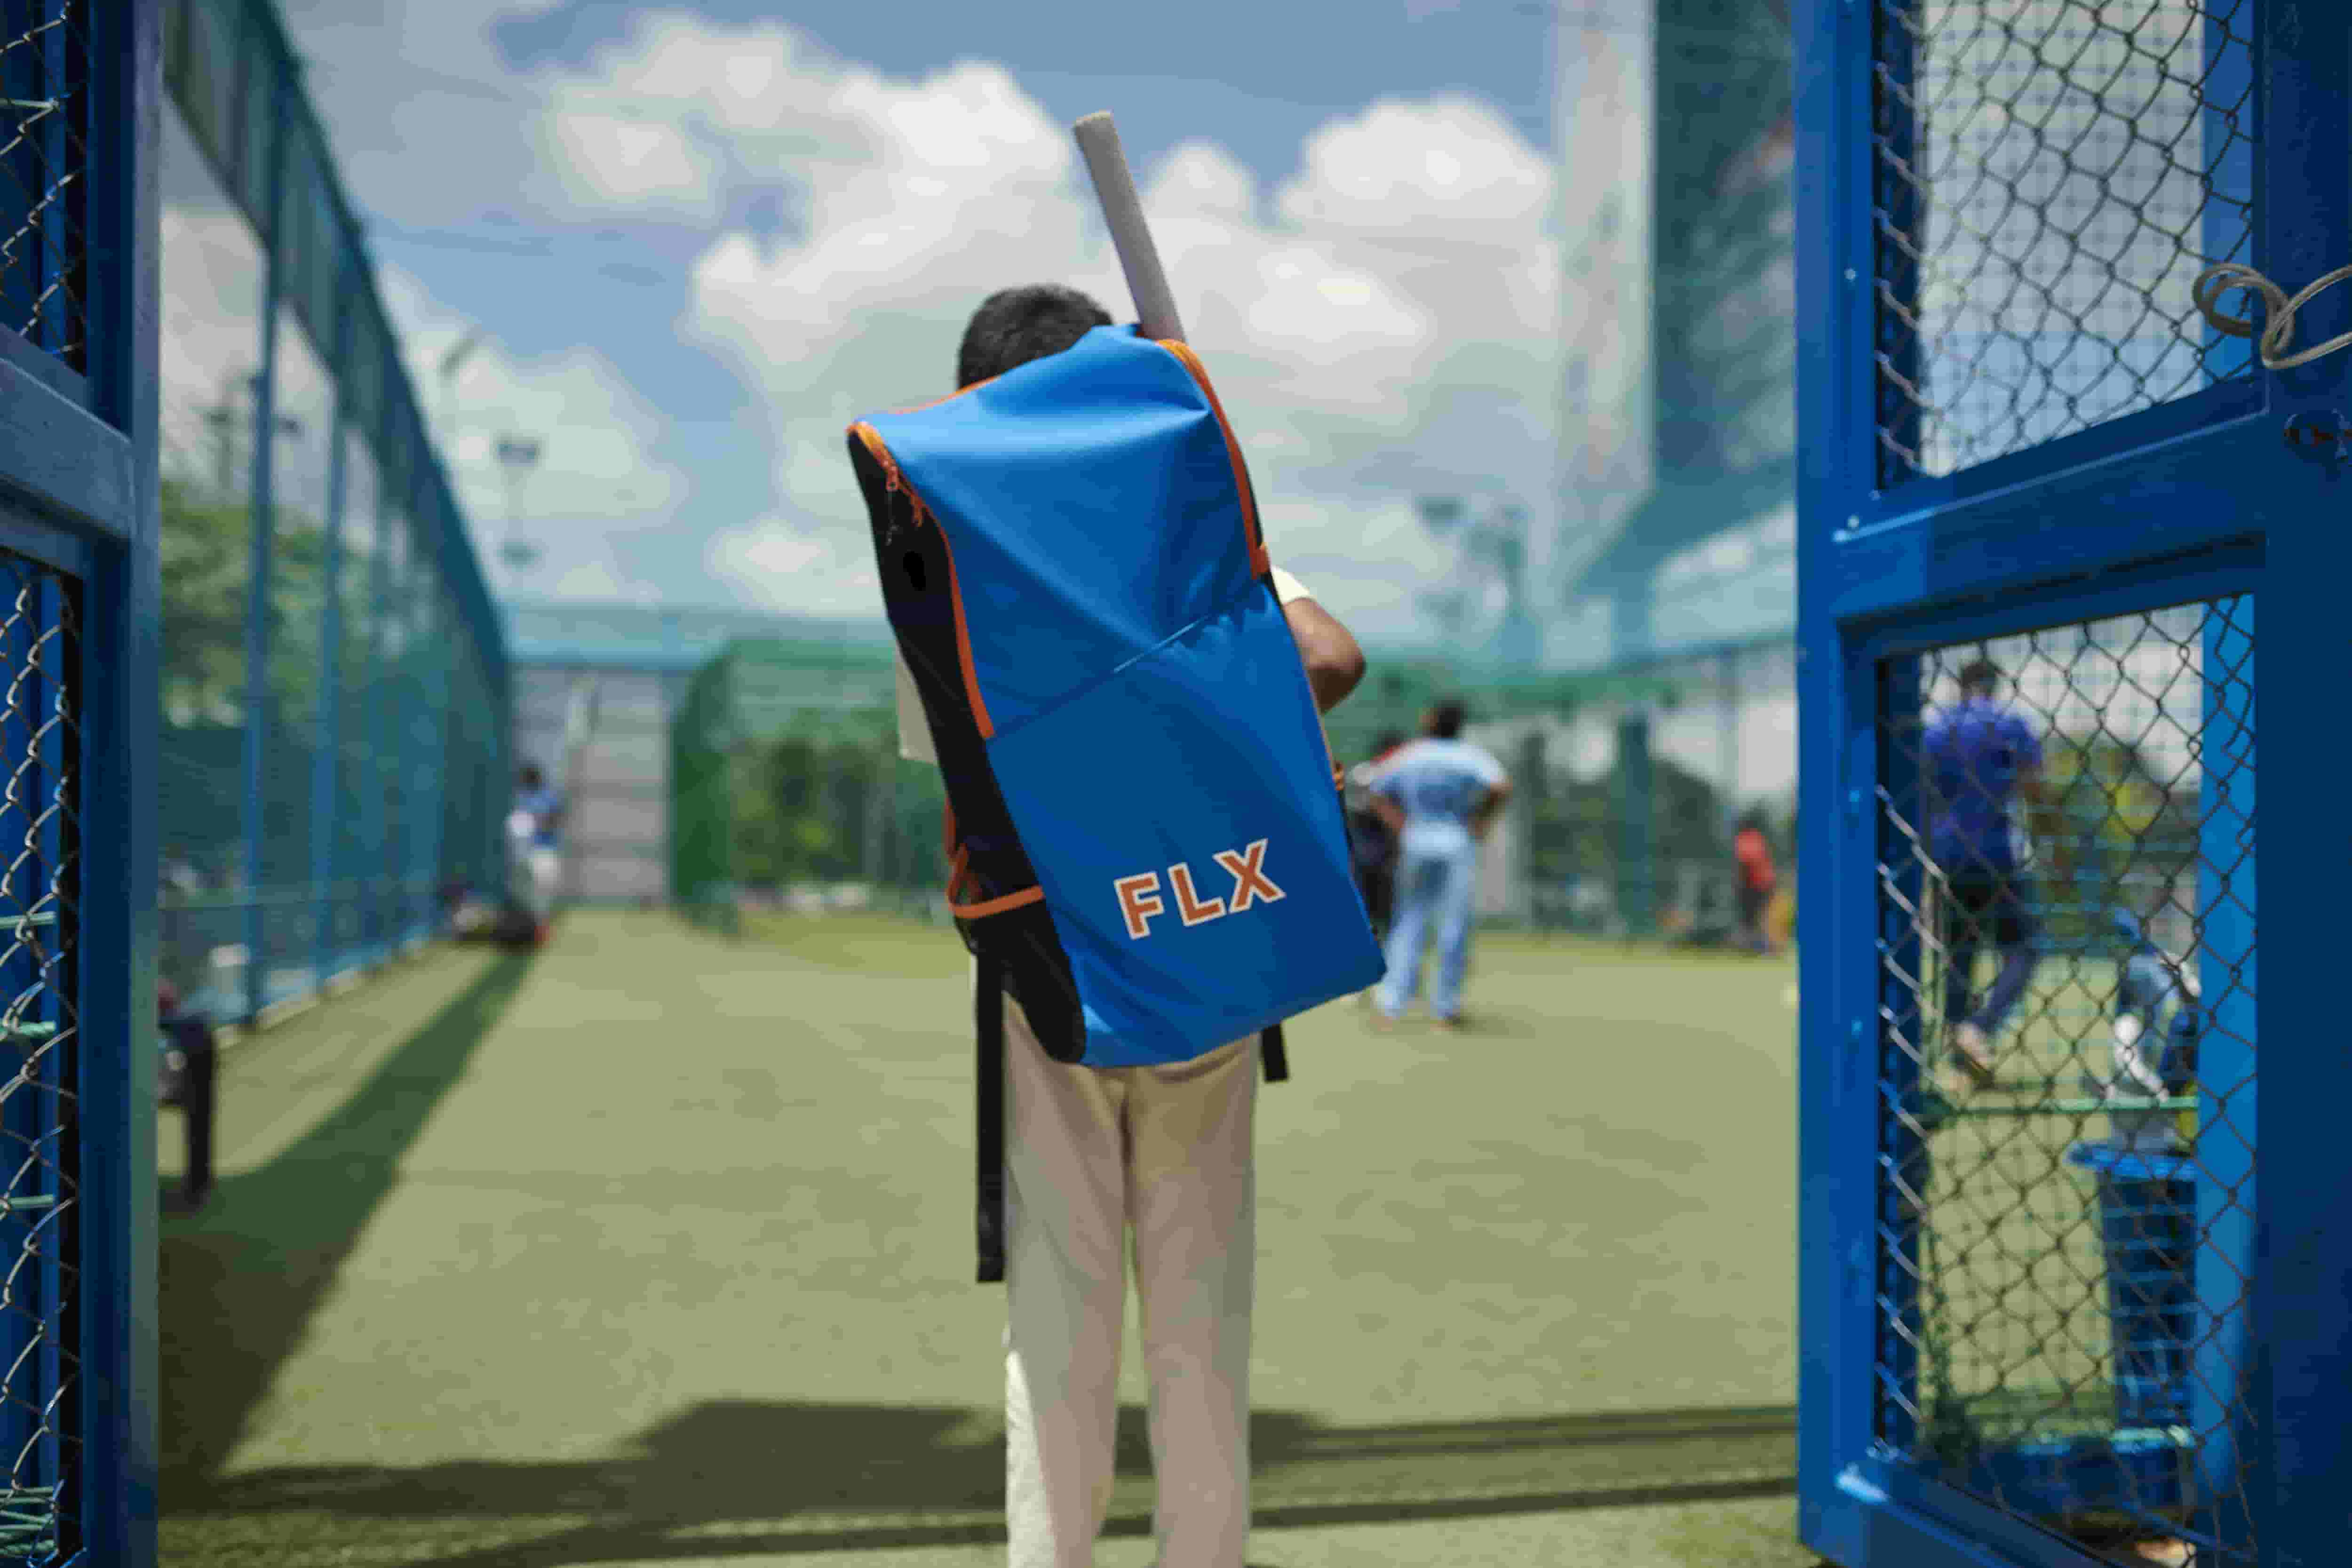 Pro Tips To Choose The Best Cricket Kit For A Junior Cricket Player